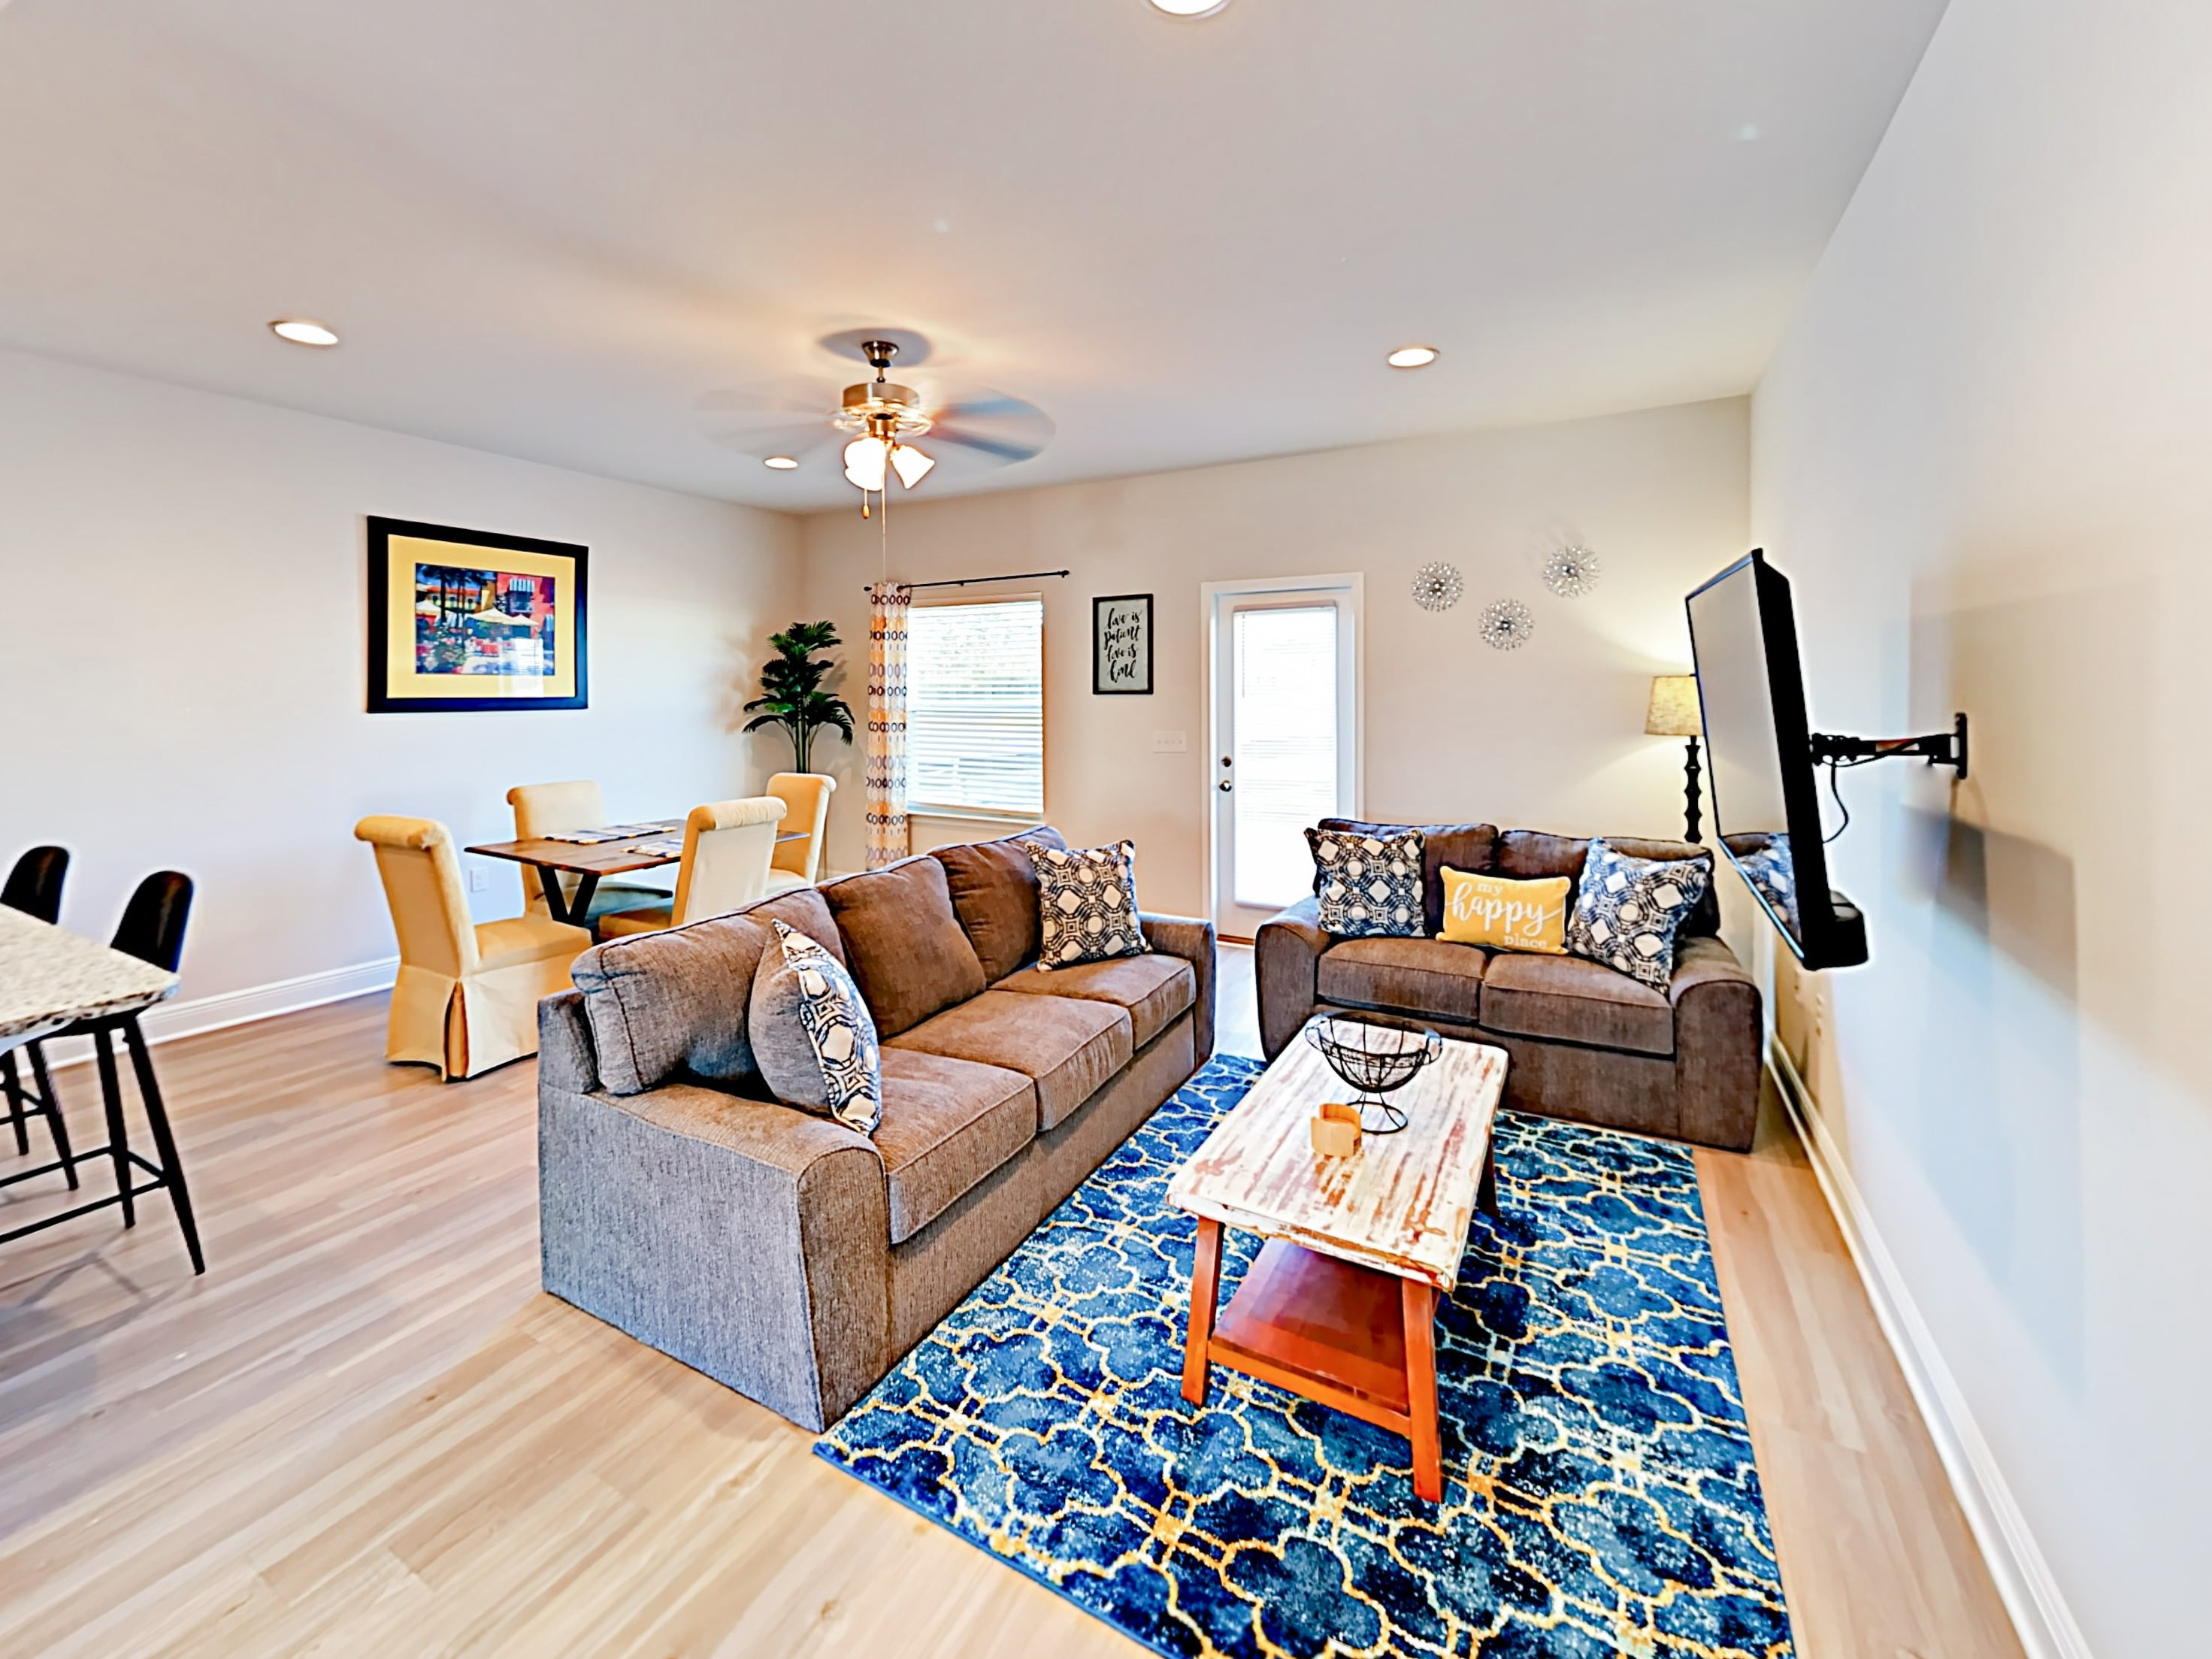 Welcome to Panama City Beach! This townhouse is professionally managed by TurnKey Vacation Rentals.